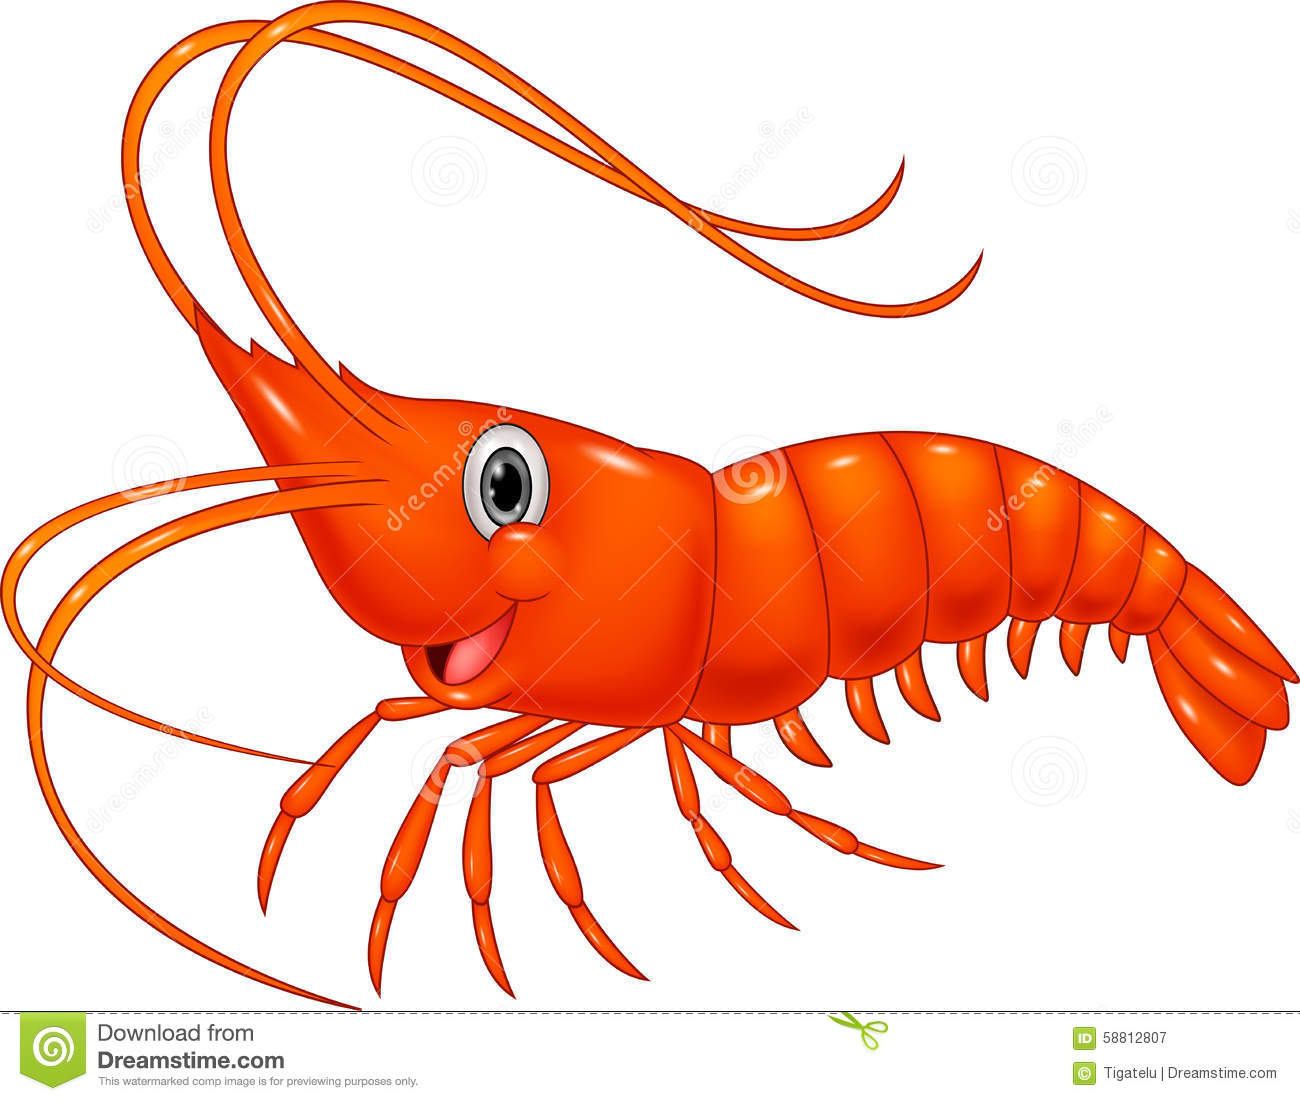 ... Shrimp Stock Vector - Image: 58812807 Cute Baby Sea Animals Clipart